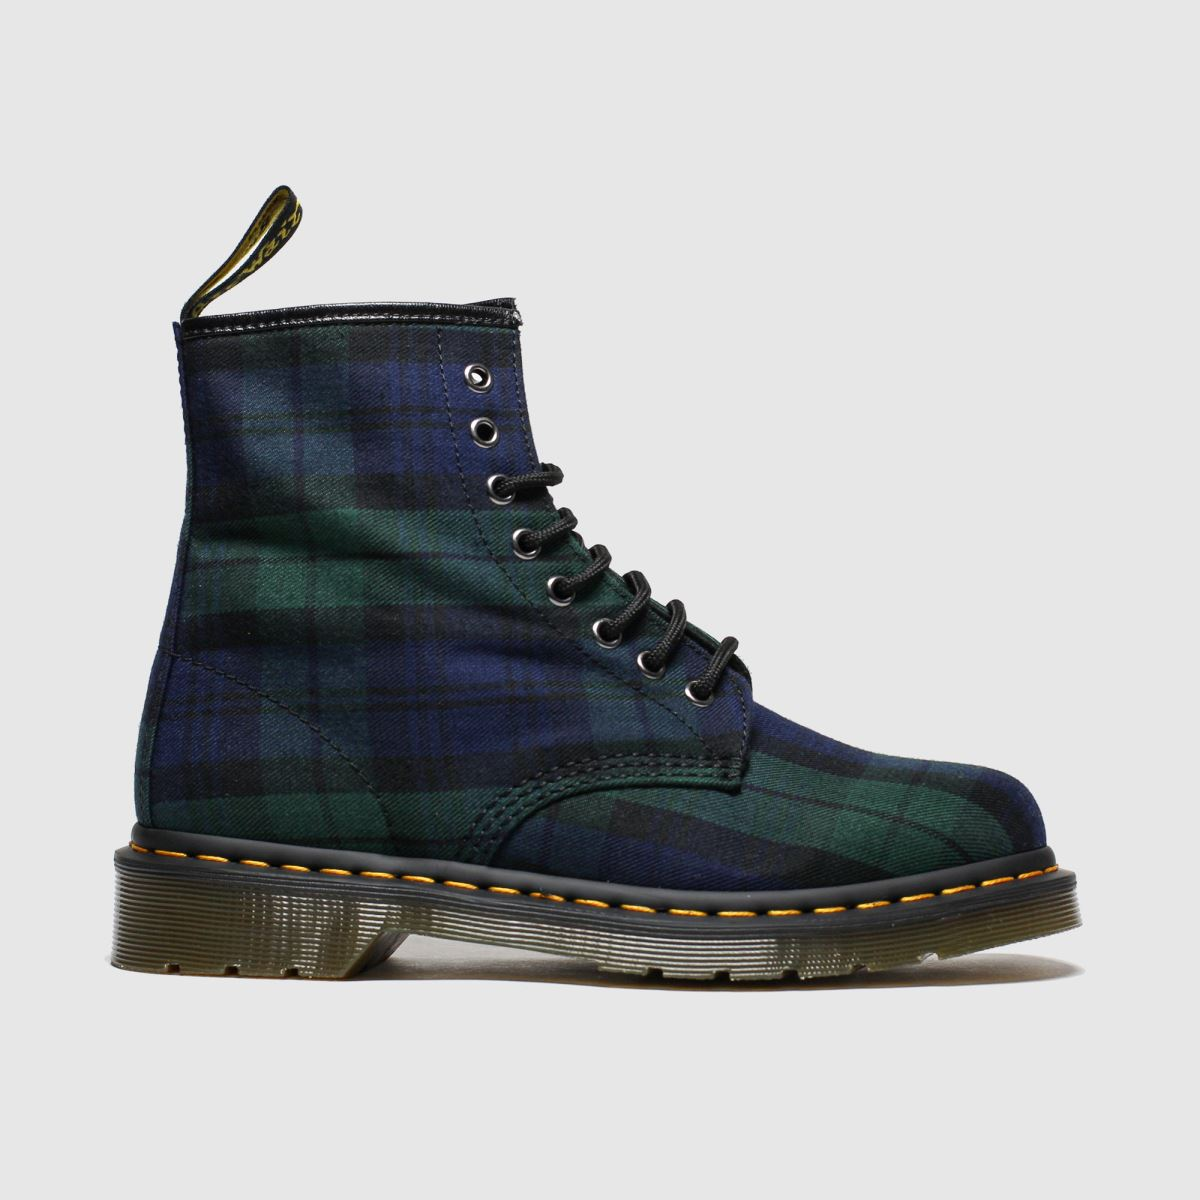 Dr Martens Navy & Green 8 Eye Tartan Canvas Boots